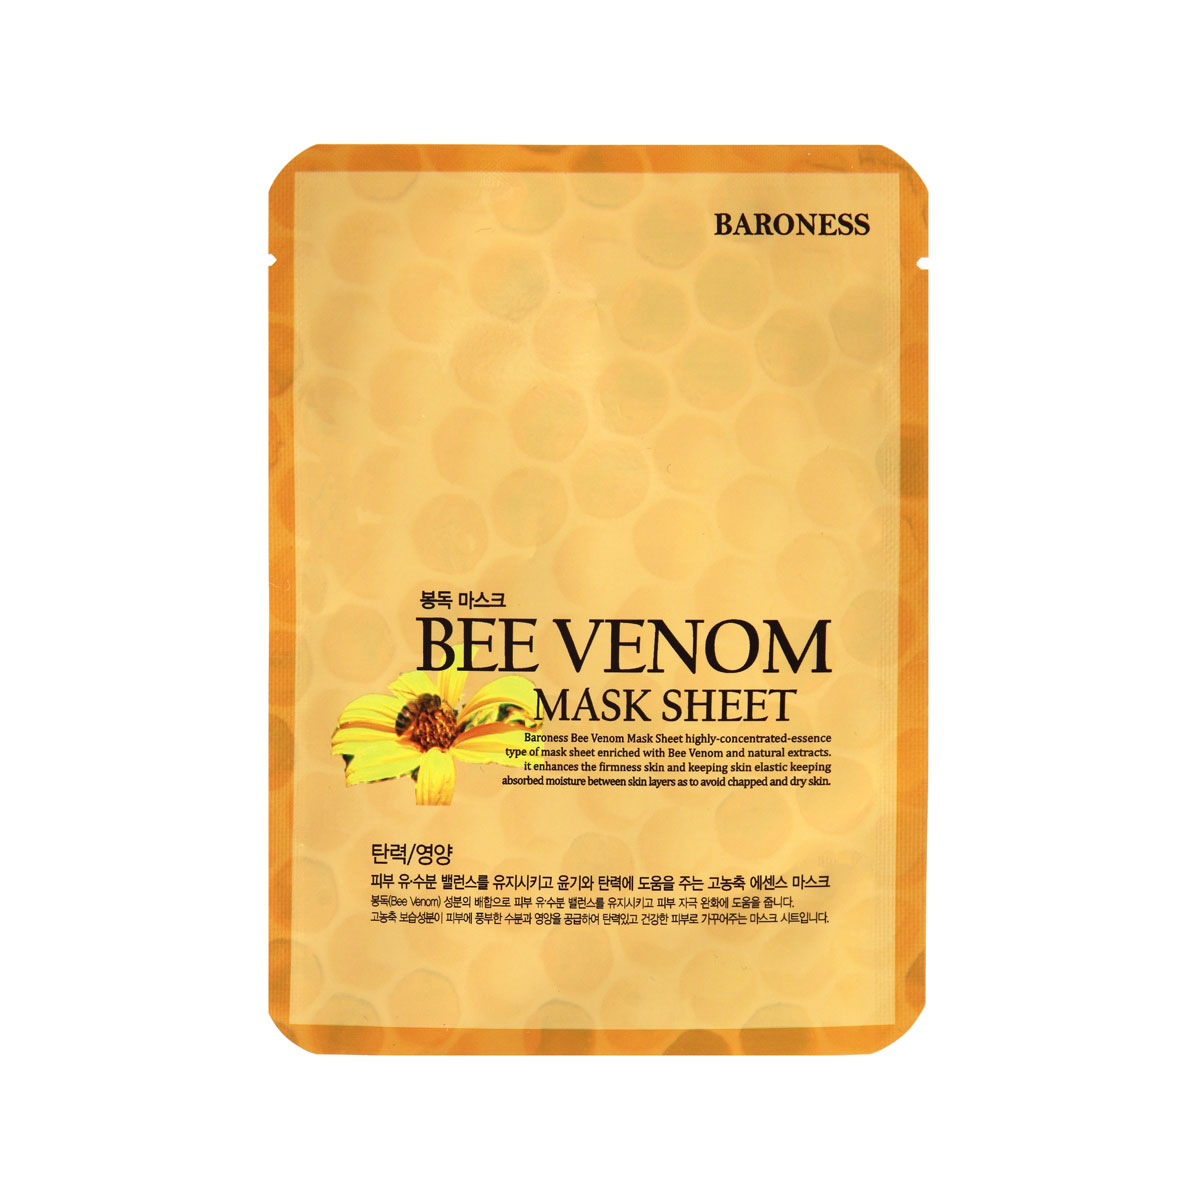 BARONESS MASK SHEET BEE VENOM